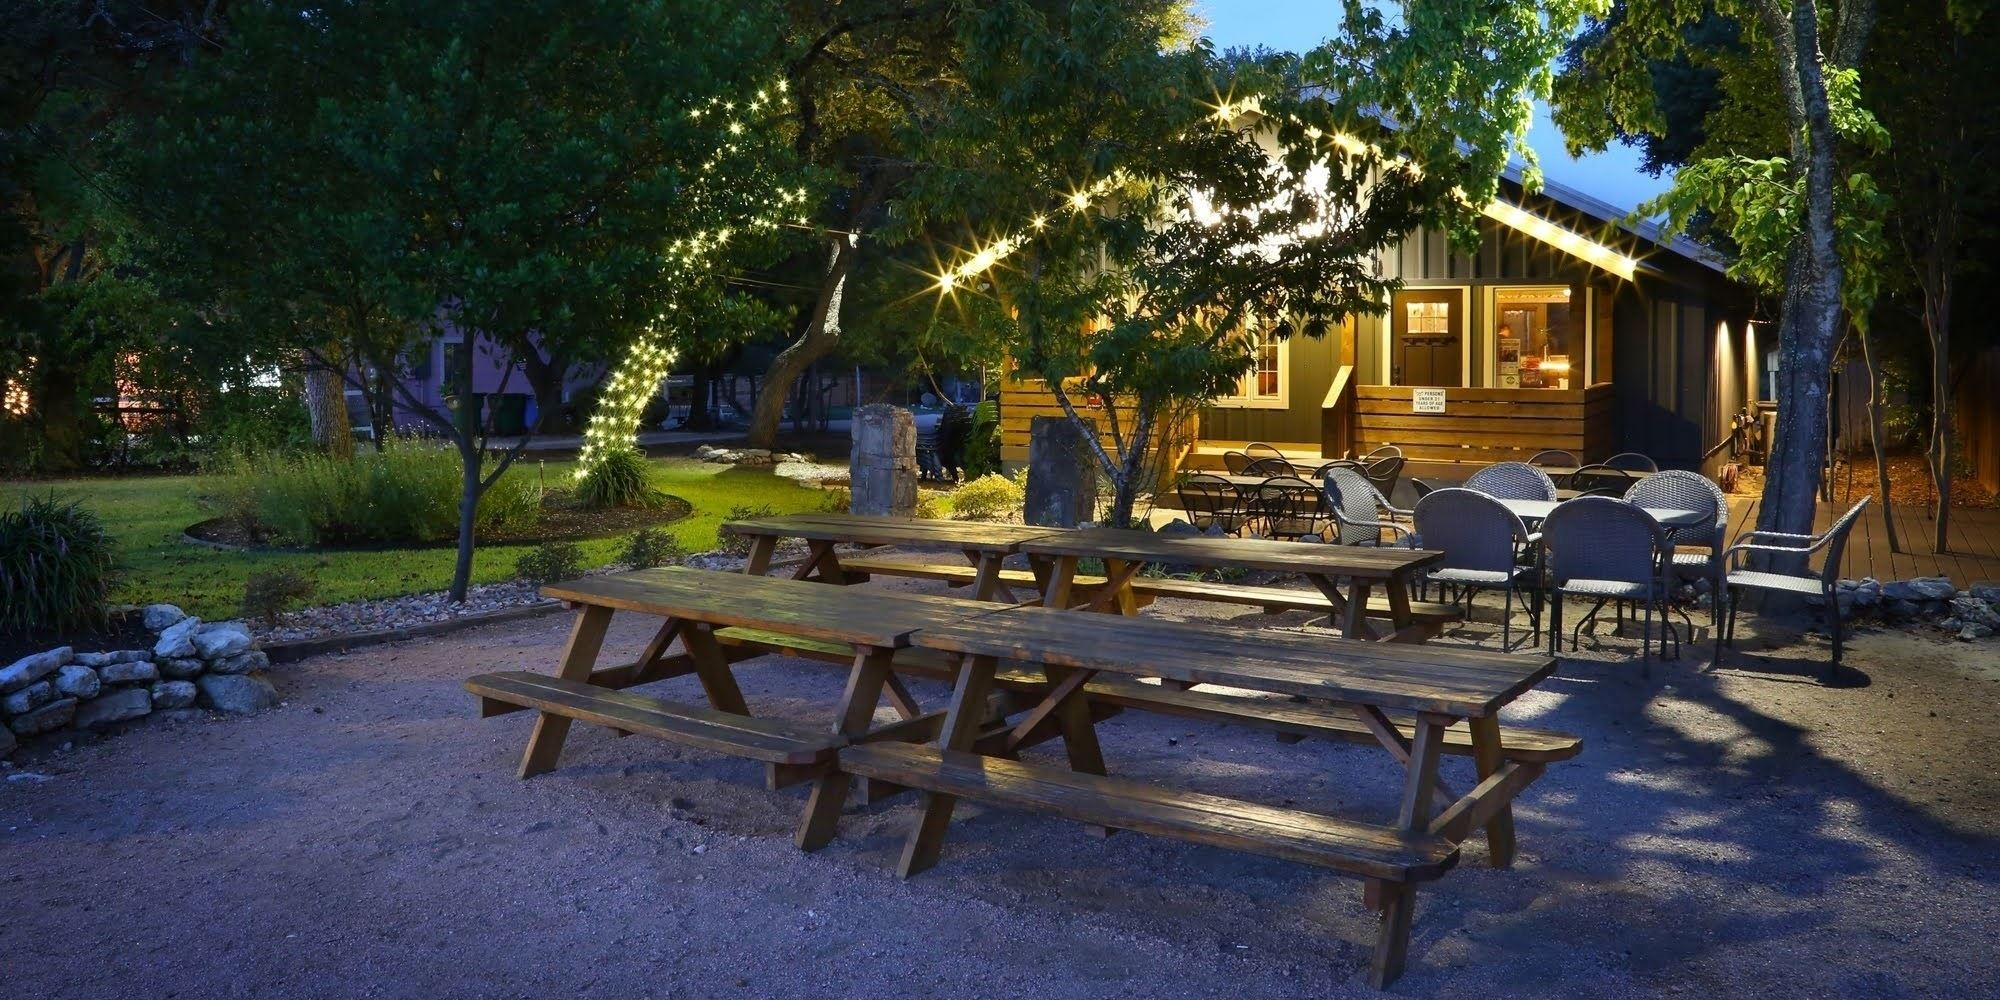 The front of a small building at night with string lights illuminating picnic tables and the front porch